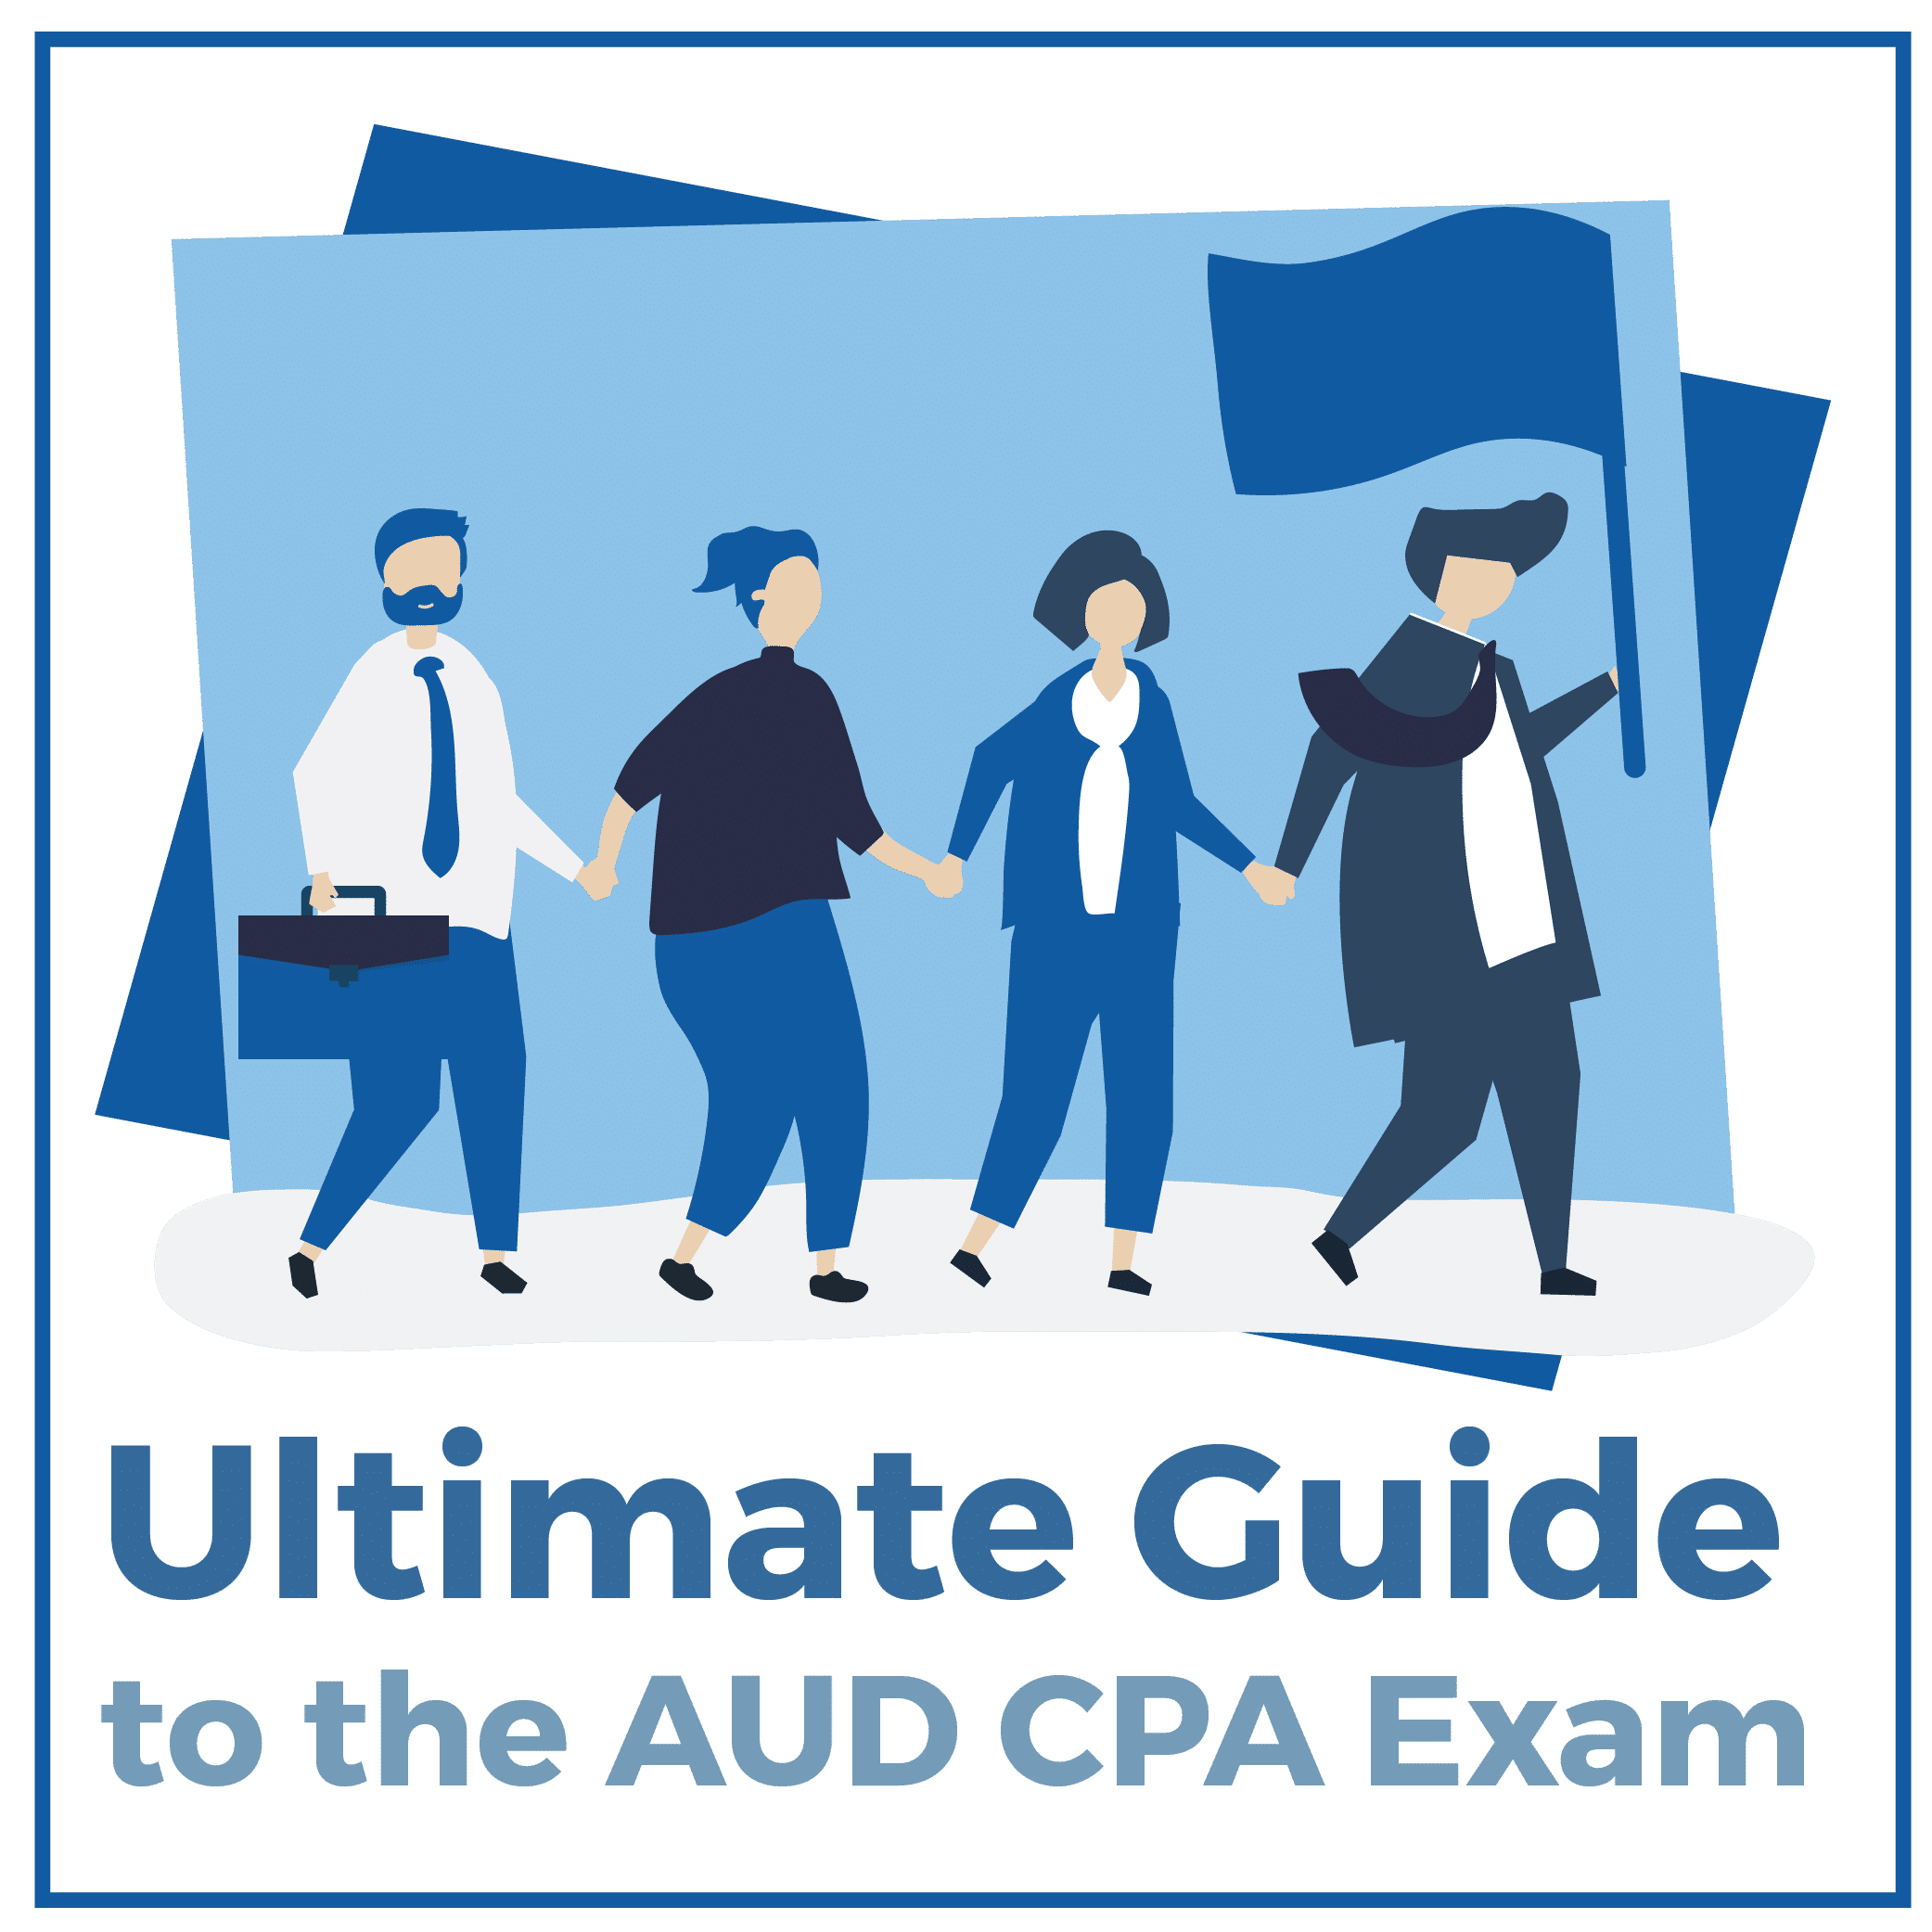 Ultimate Guide to the AUD CPA Exam